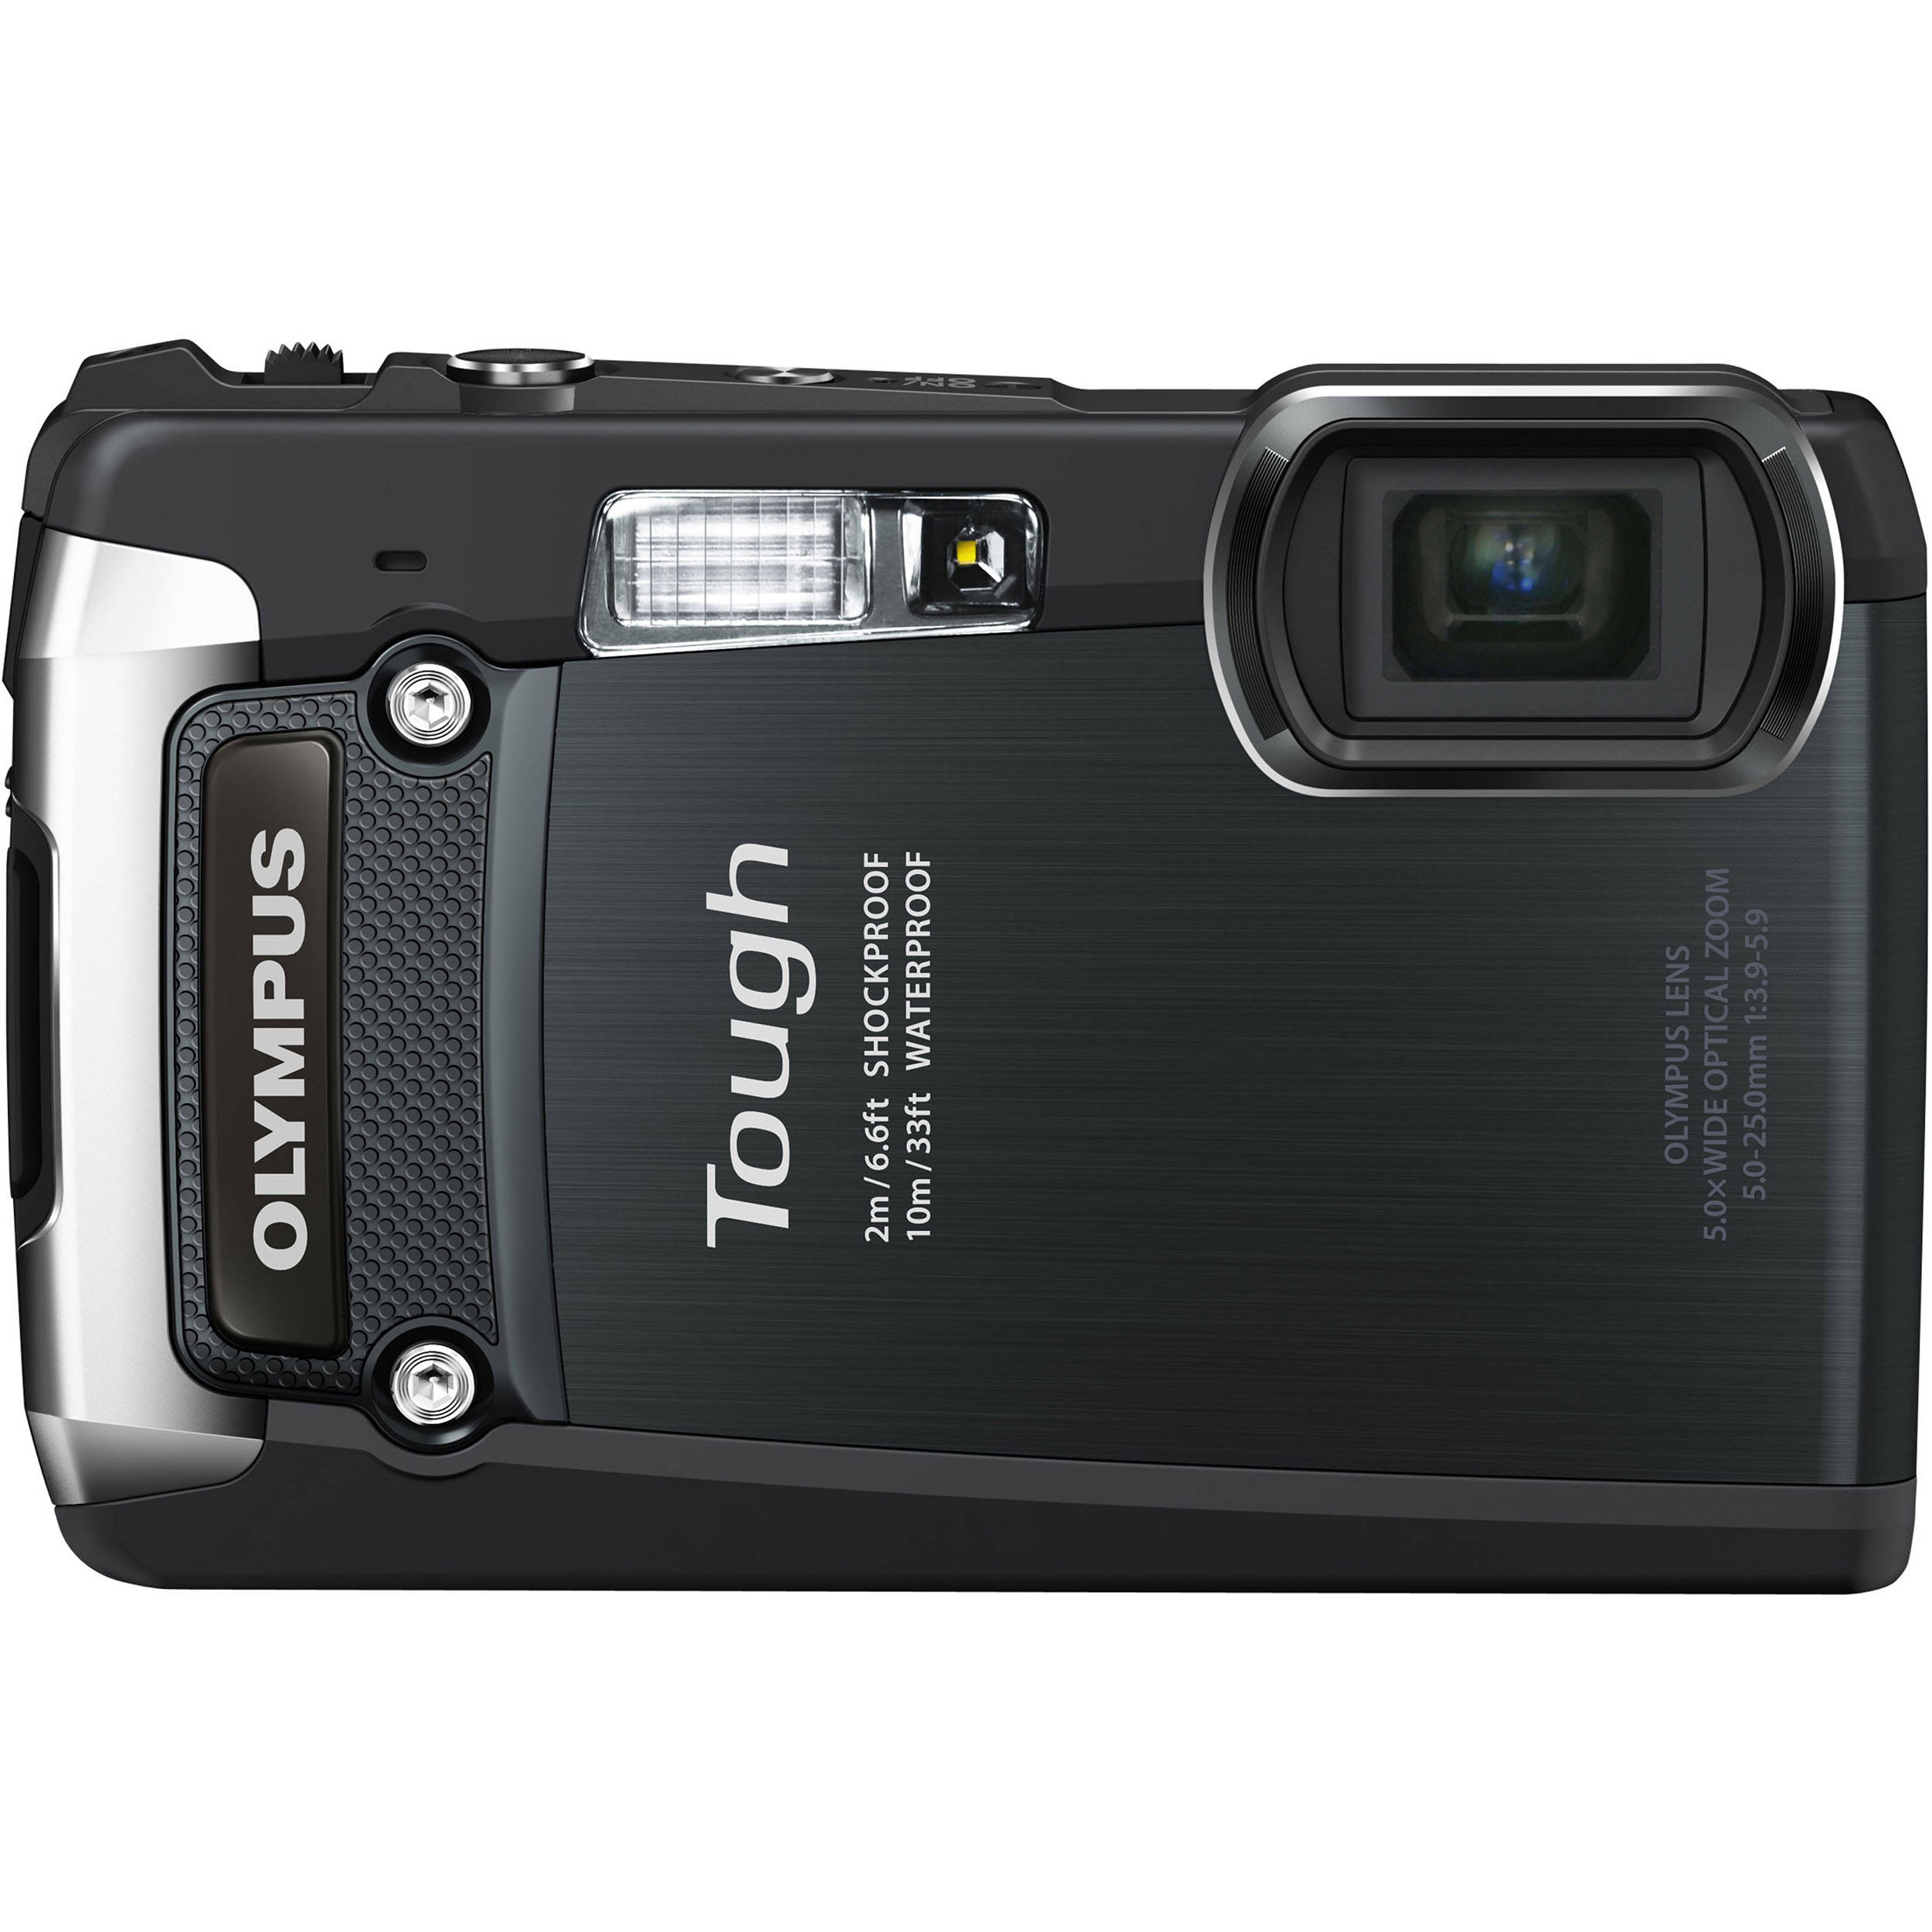 olympus tough tg 820 ihs digital camera black v104060bu000 b h rh bhphotovideo com